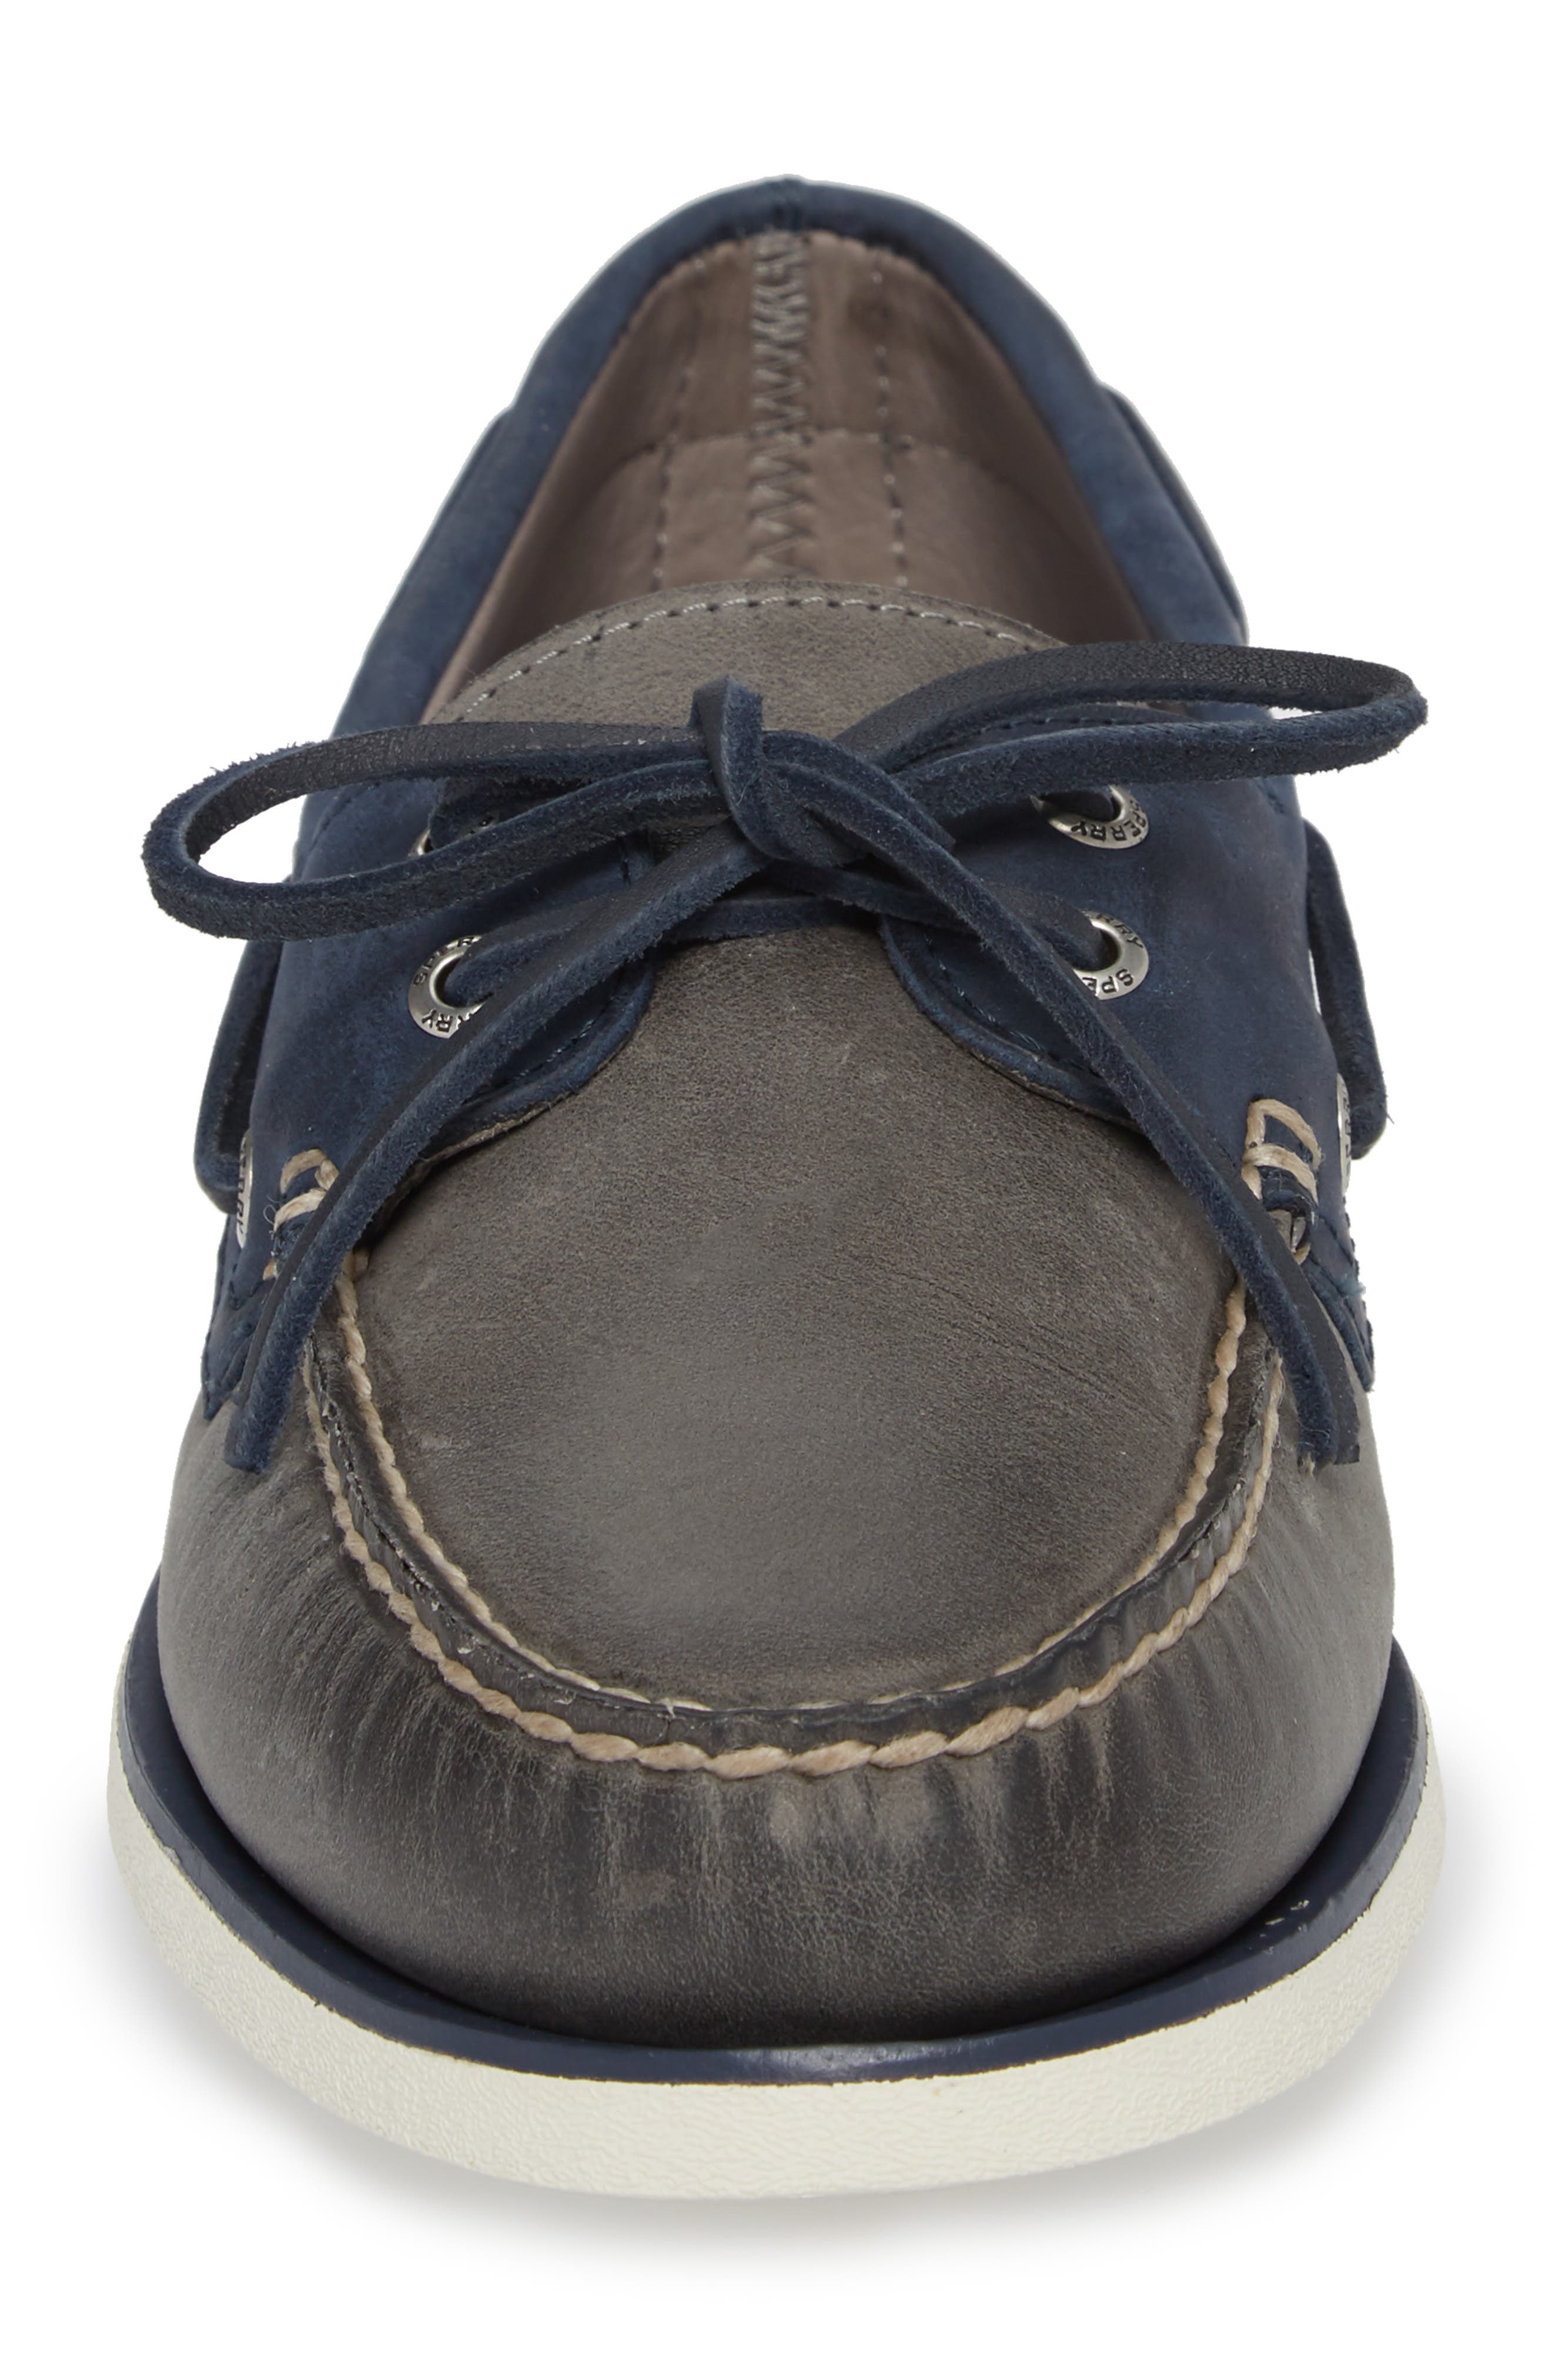 Gold Cup Authentic Original Boat Shoe,                             Alternate thumbnail 4, color,                             Grey/ Navy Leather